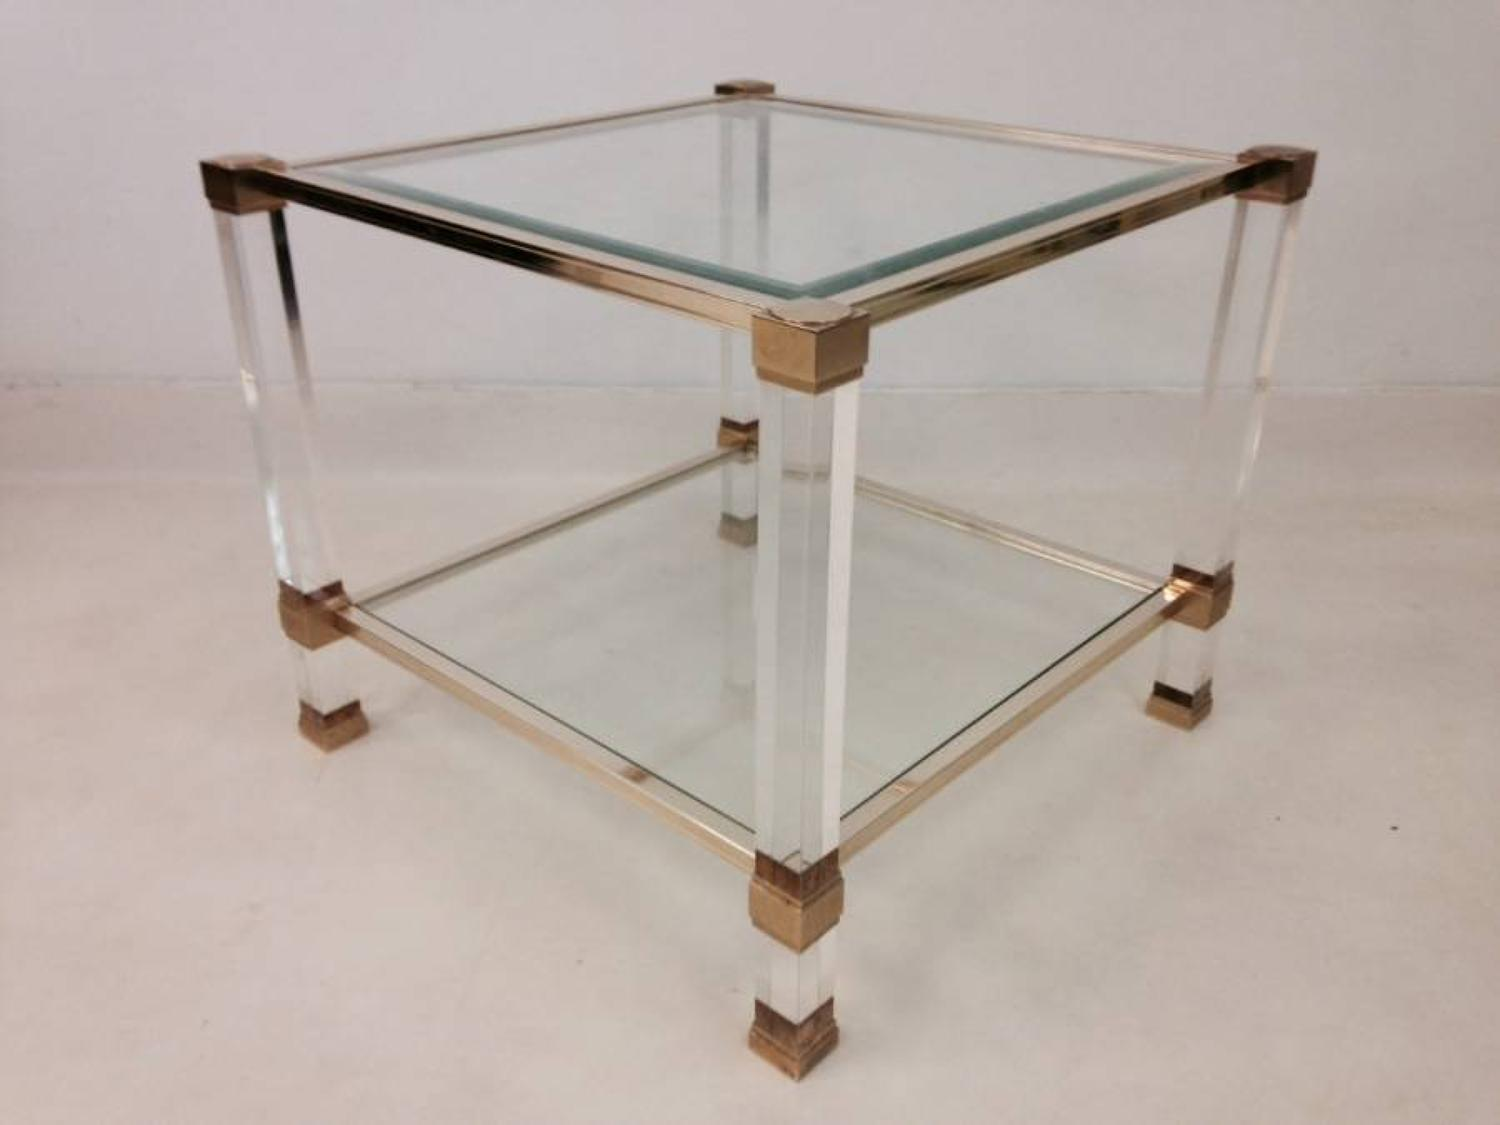 Lucite and brass side table by Pierre Vandel